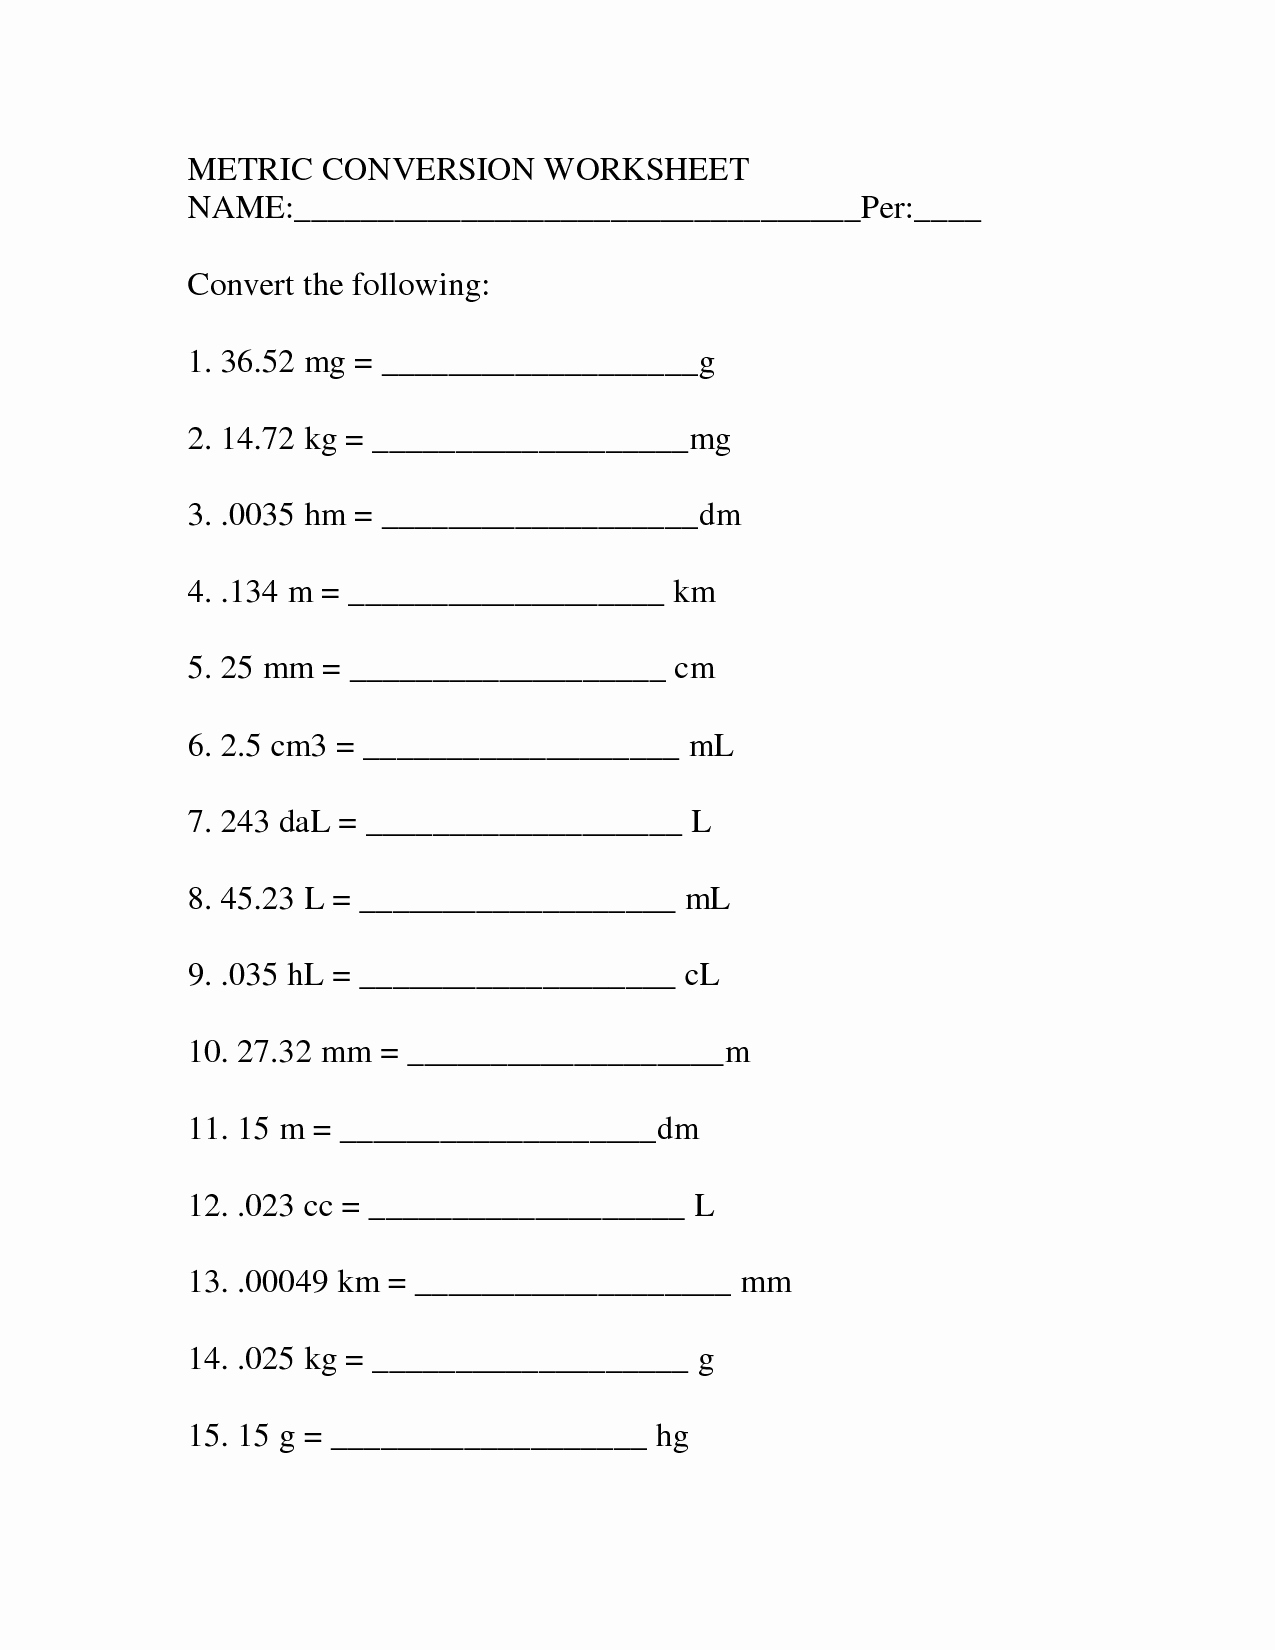 Unit Conversion Worksheet Chemistry Inspirational Metric Unit Conversion Worksheet